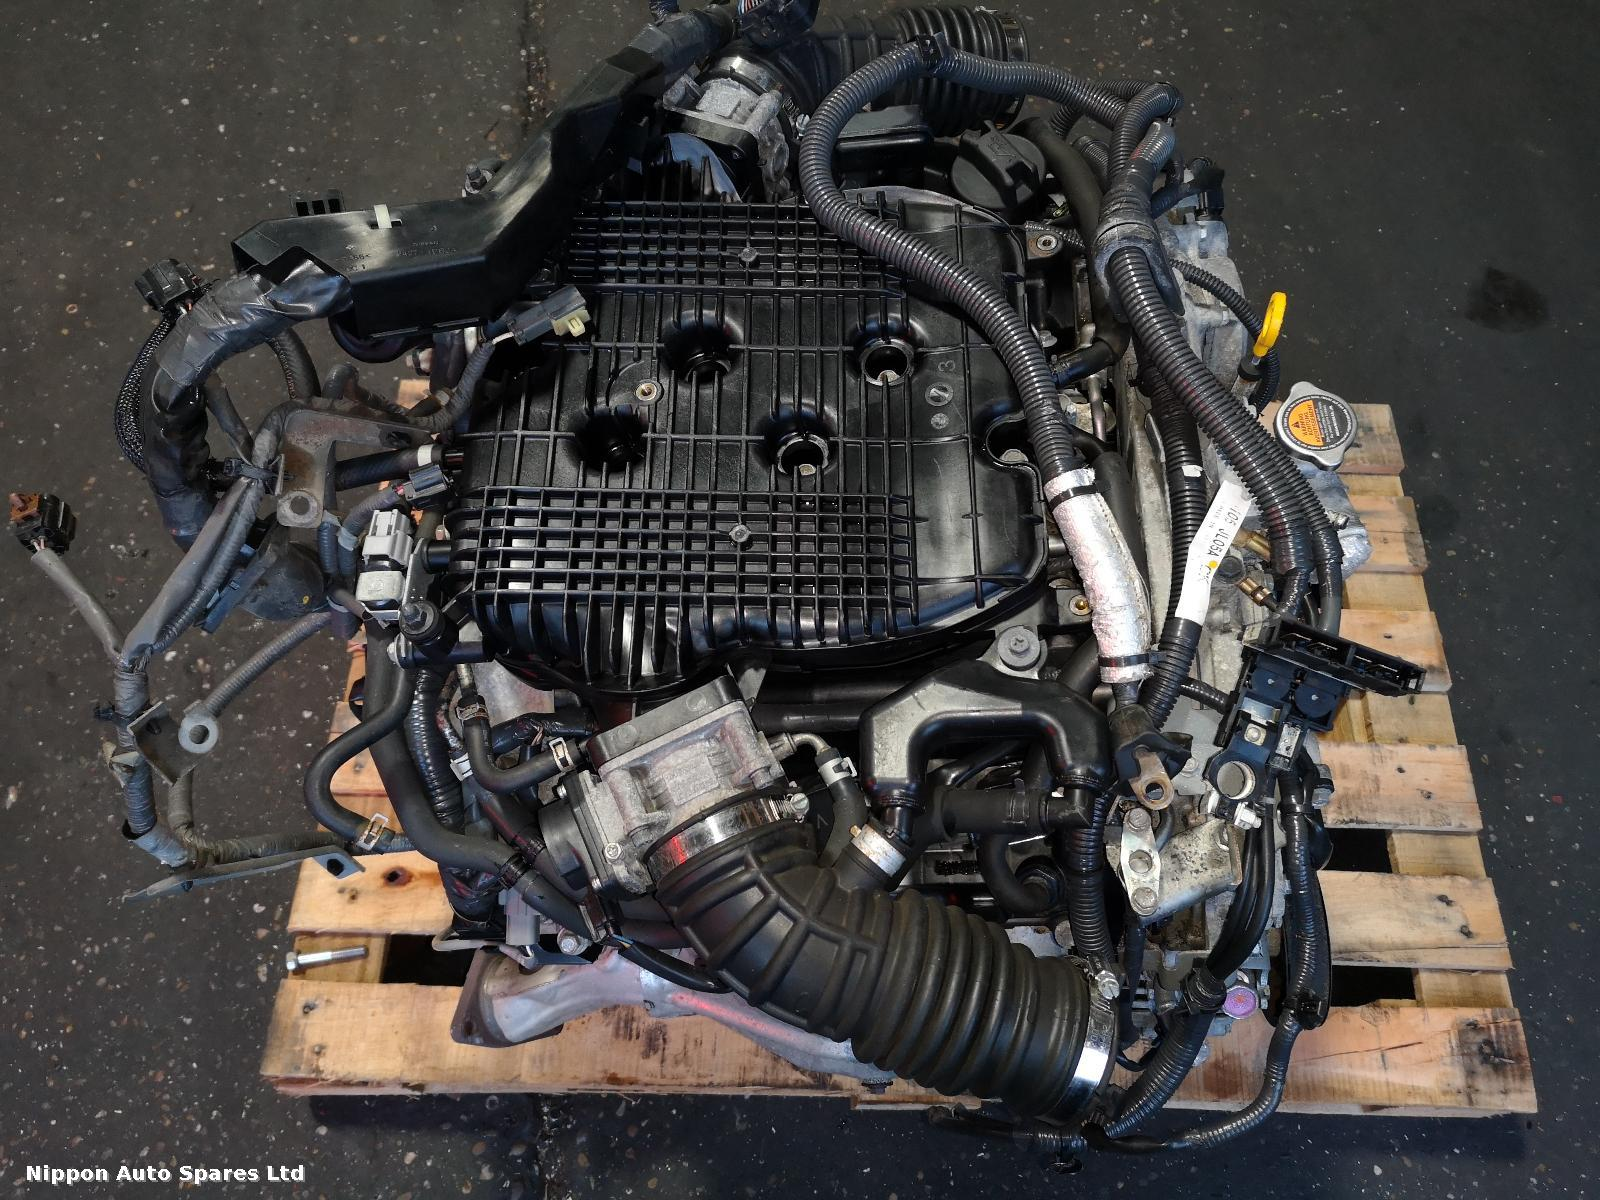 Nissan 370Z Engine VQ37 HR : 56663